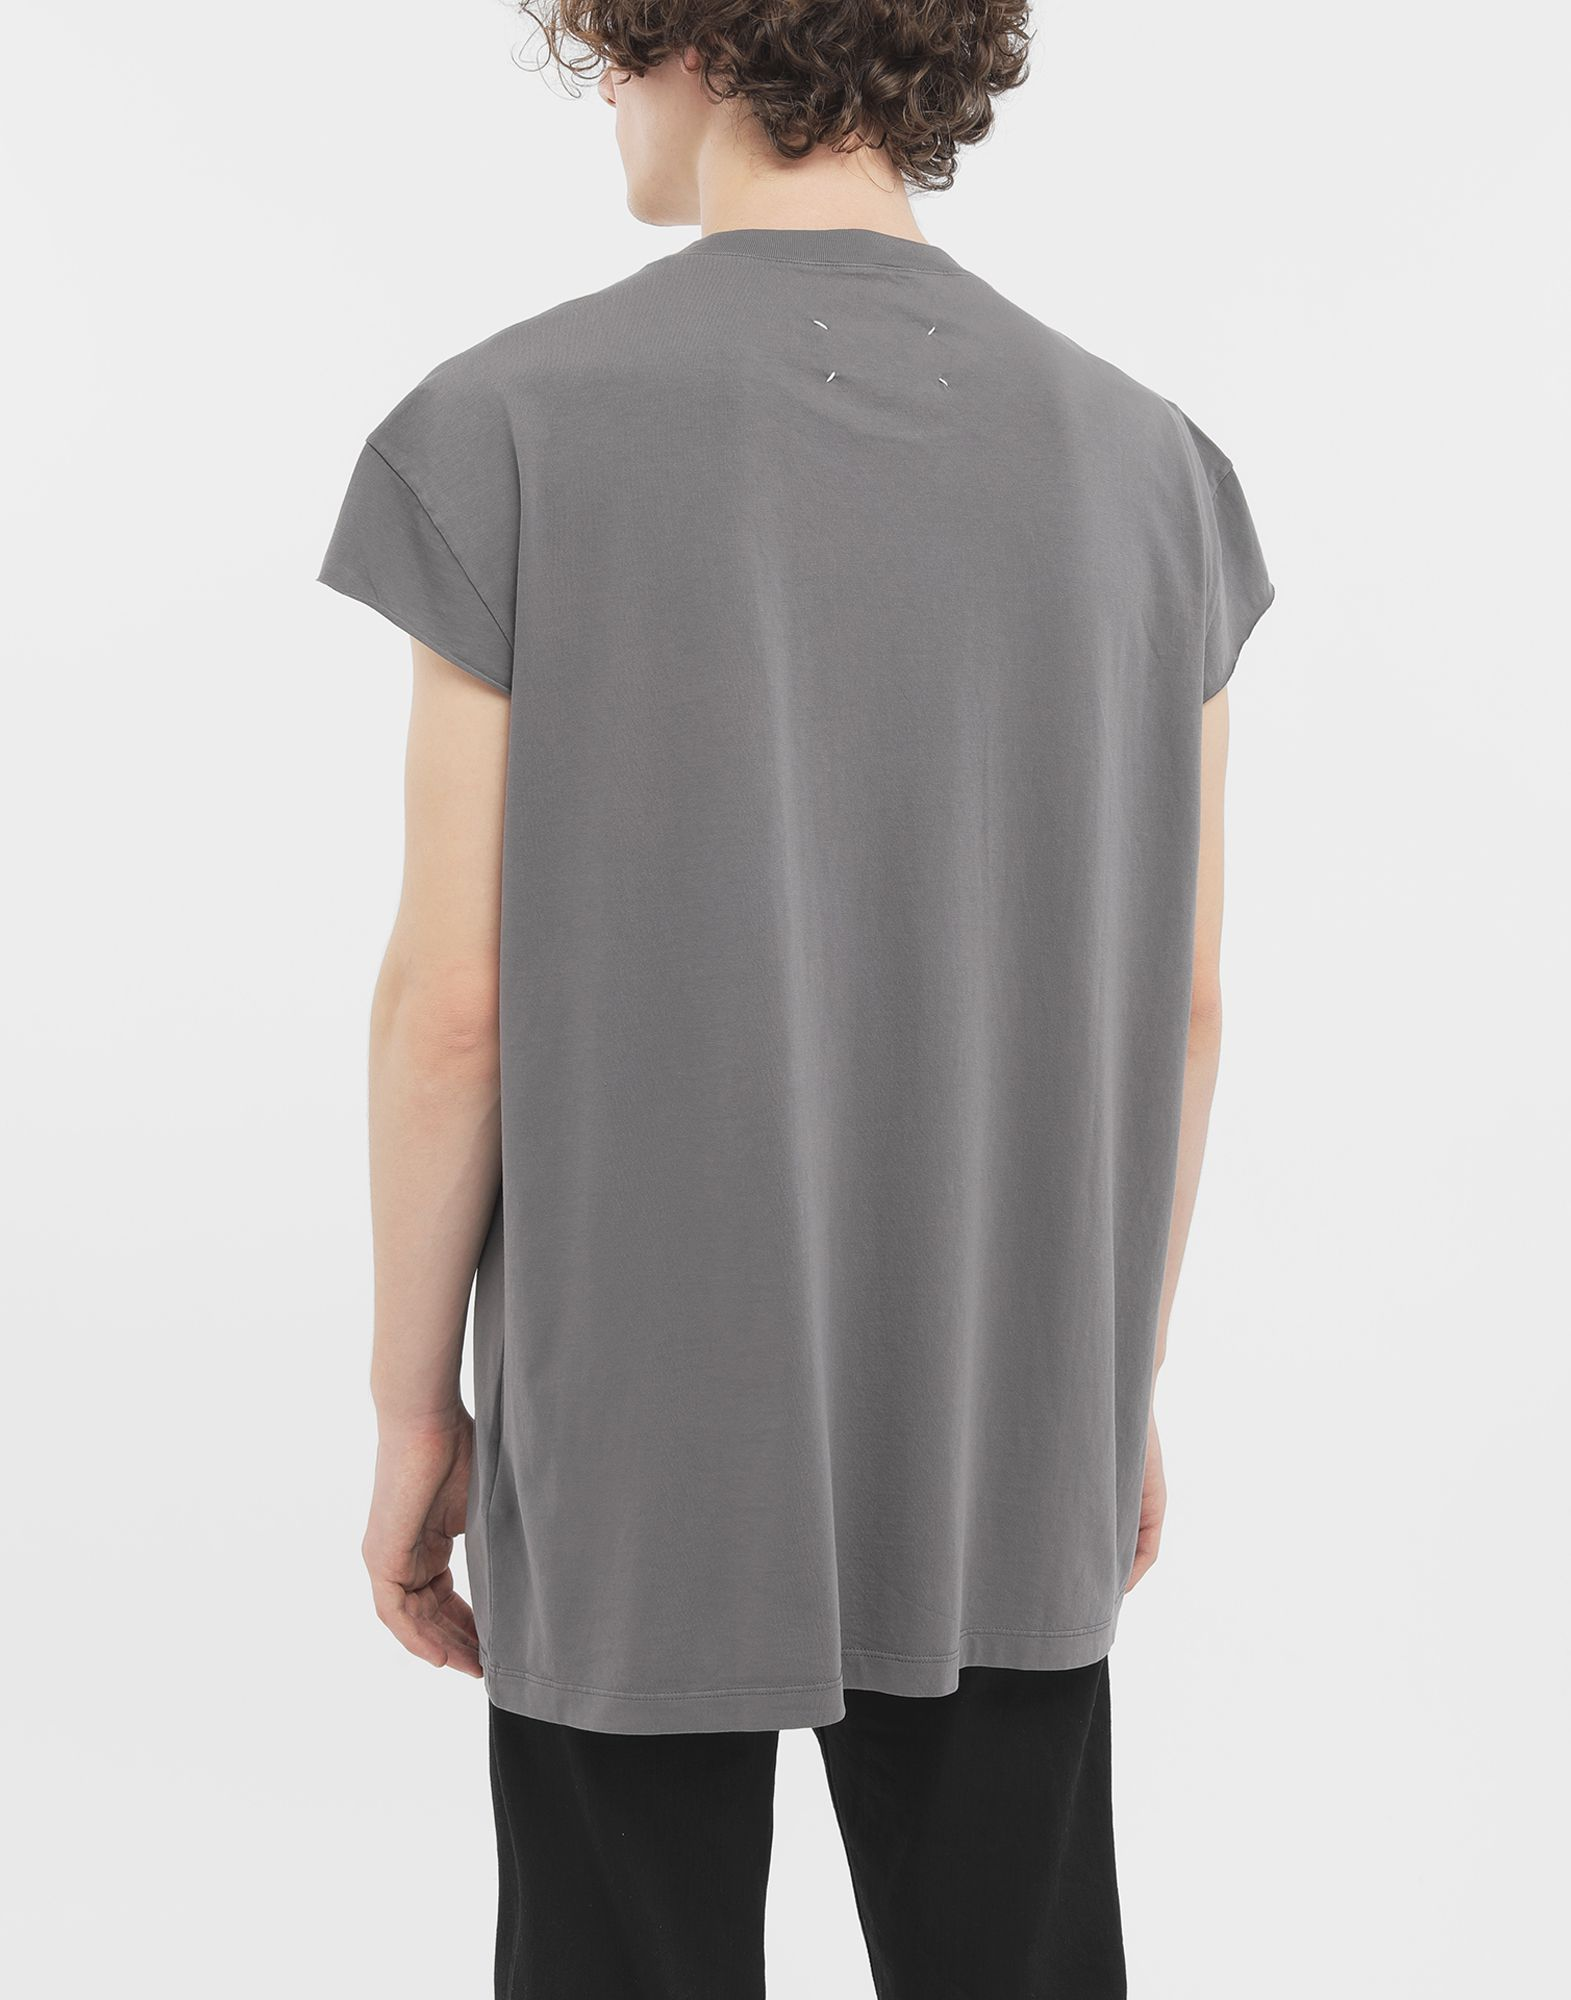 MAISON MARGIELA Décortiqué T-shirt Short sleeve t-shirt Man e